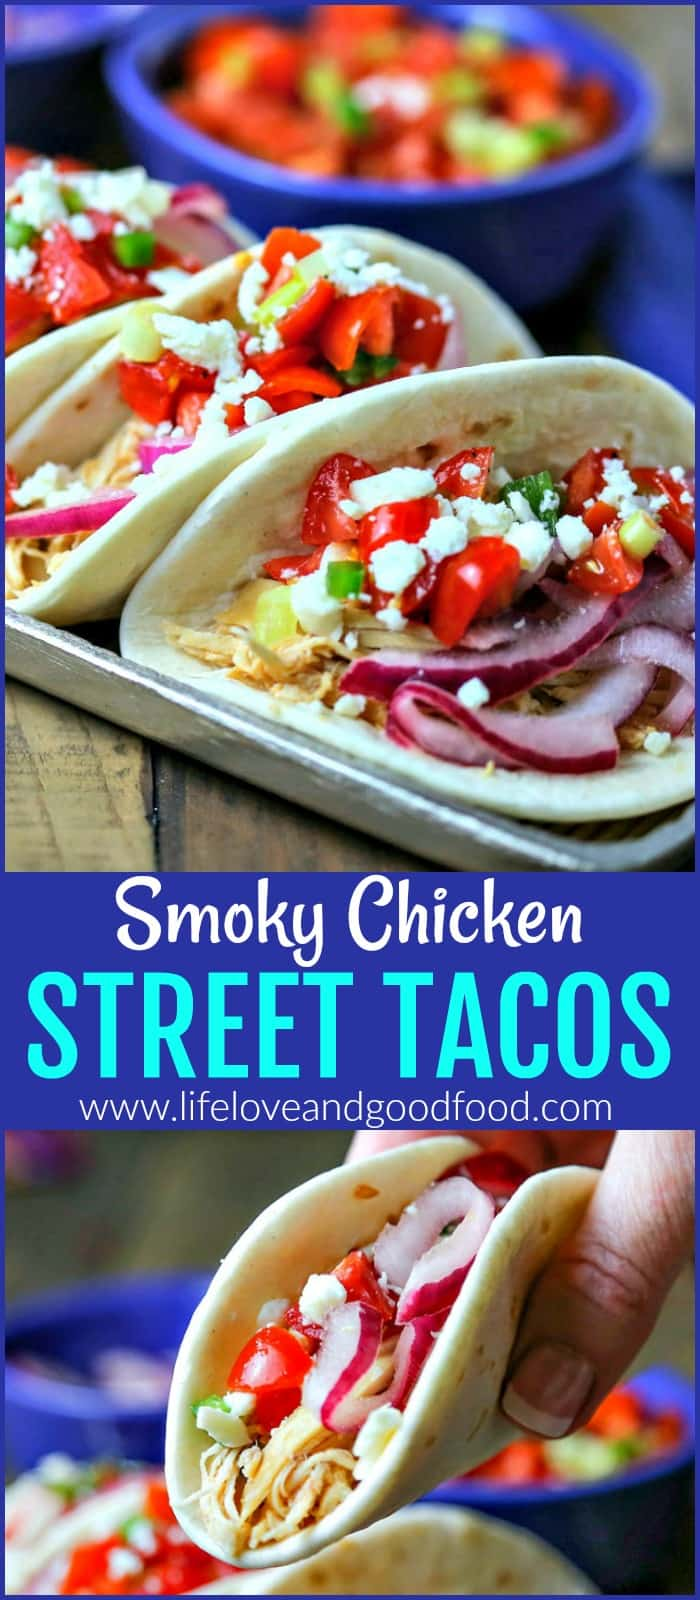 Smoky Chicken Street Tacos with Pickled Red Onion and Fresh Salsa   Life, Love, and Good Food